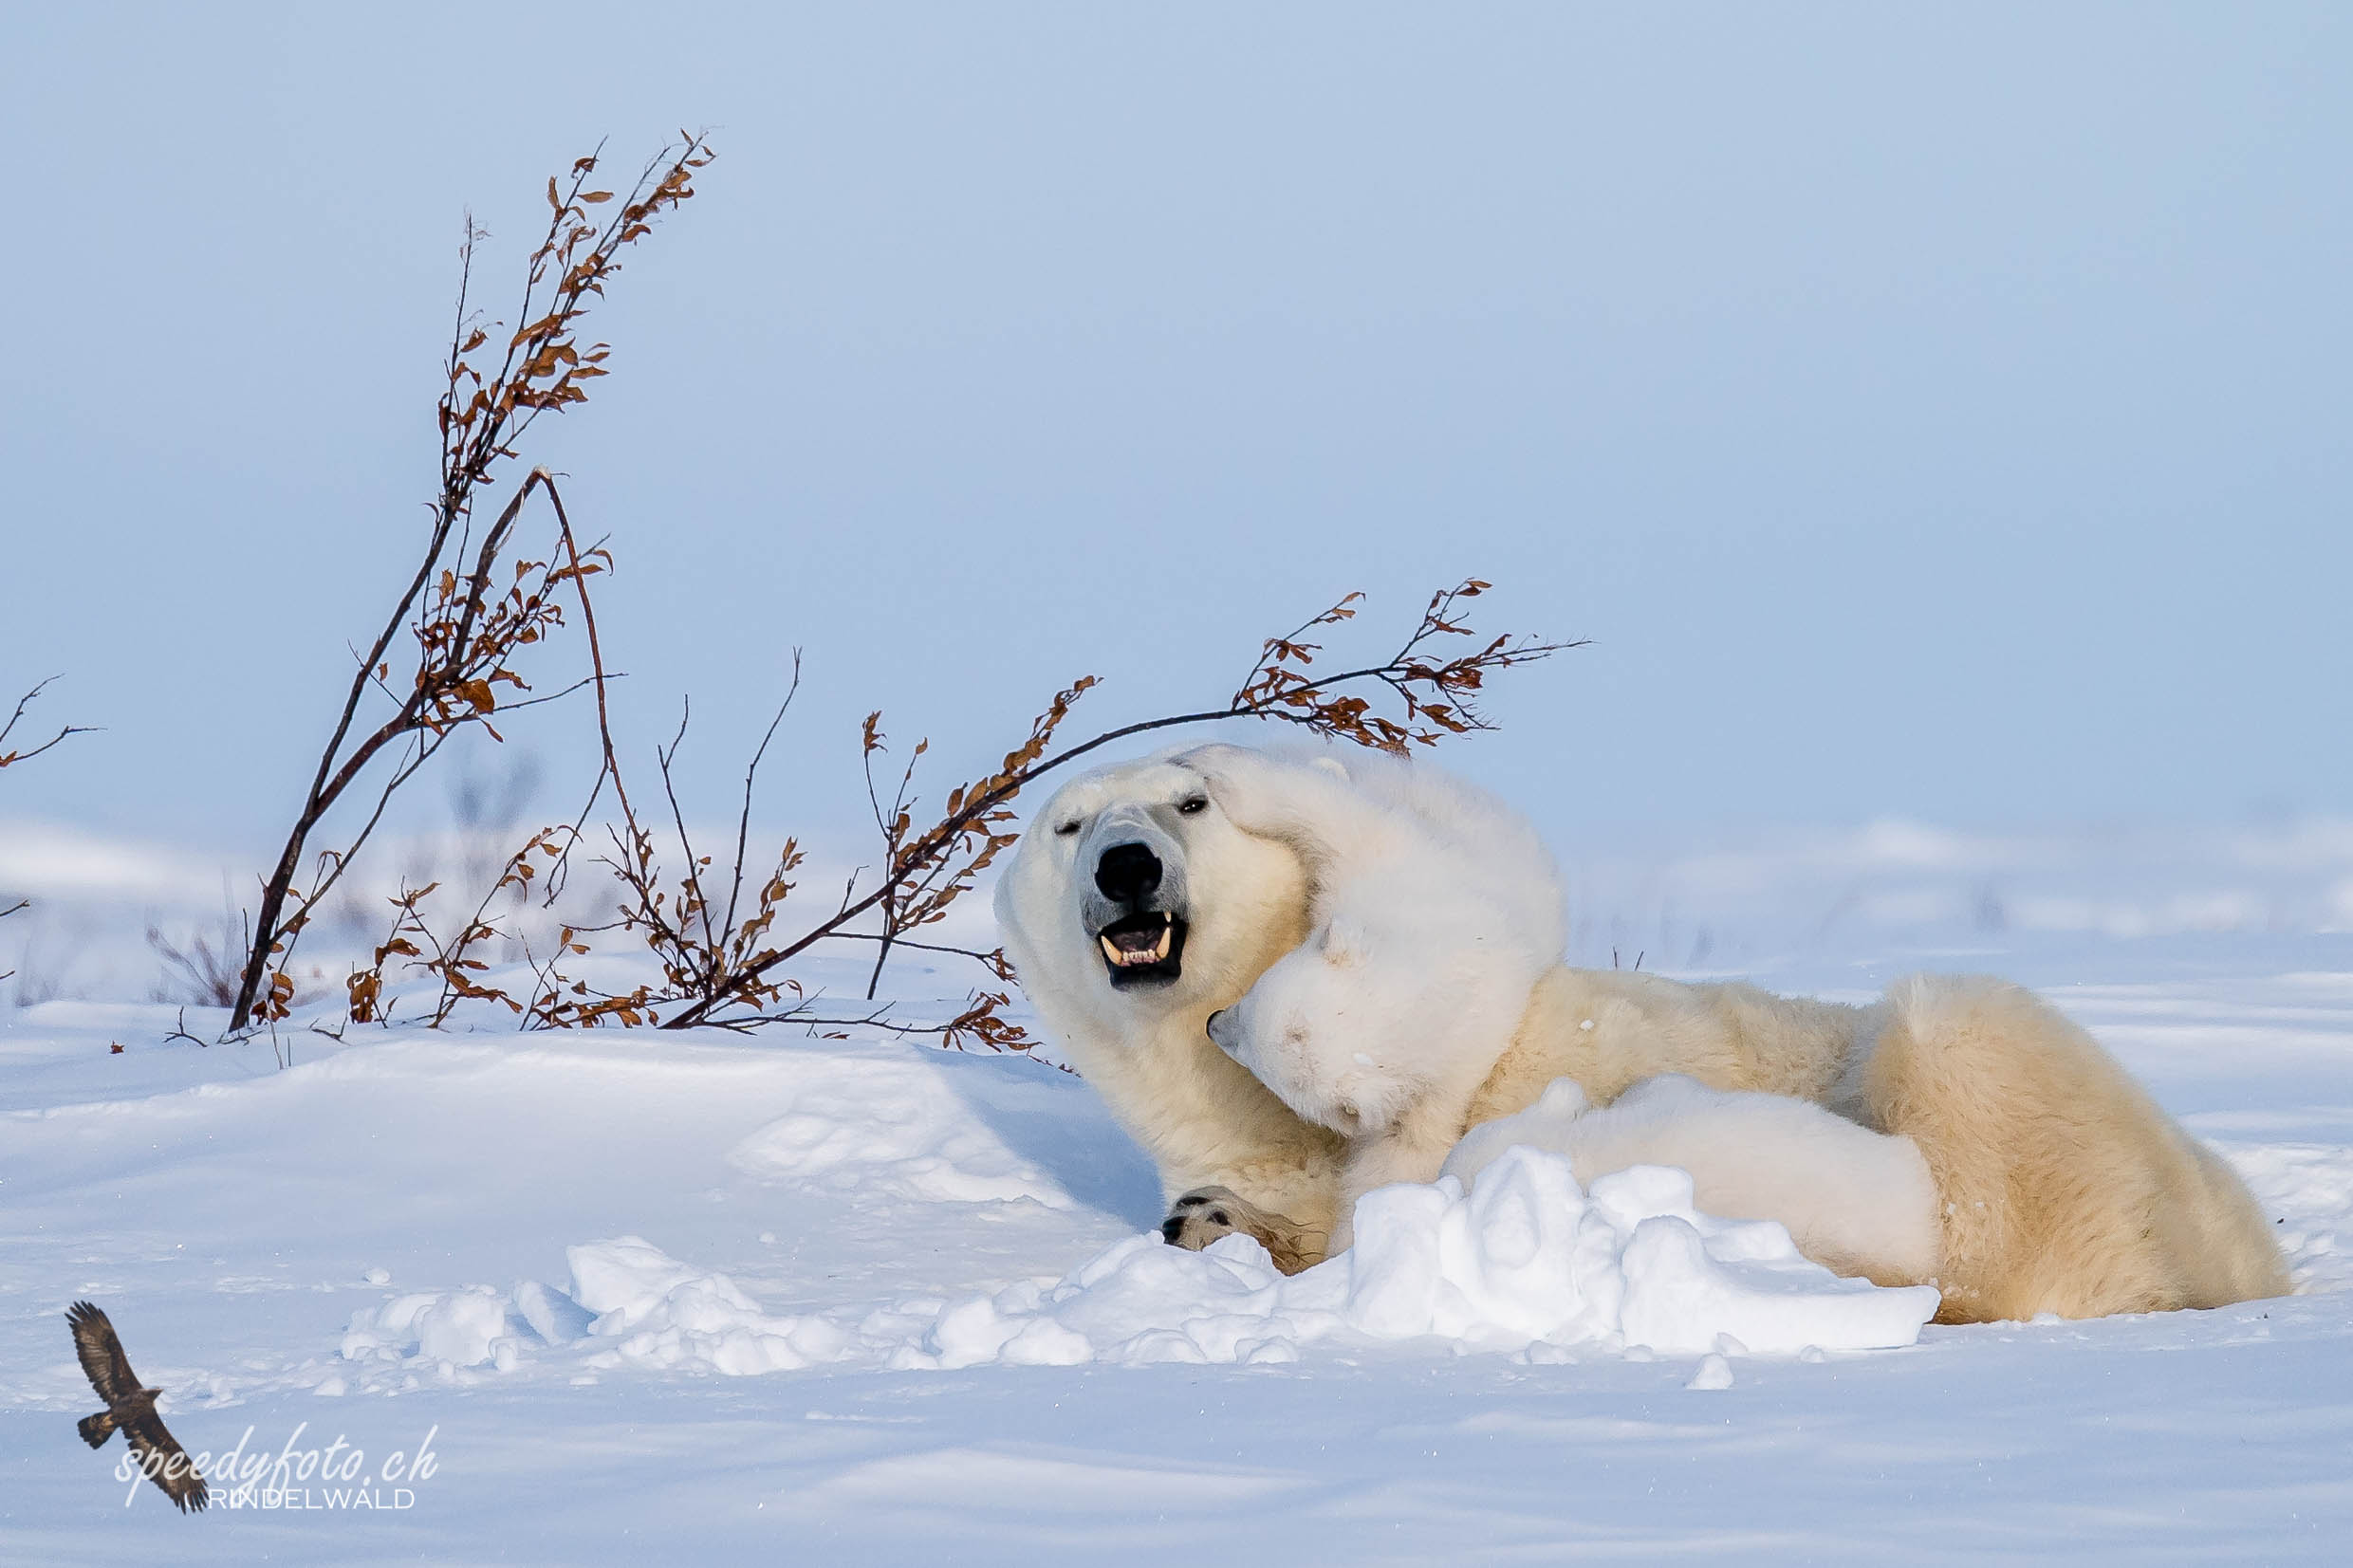 Hay mom - play with me! Arctic Canada 2019